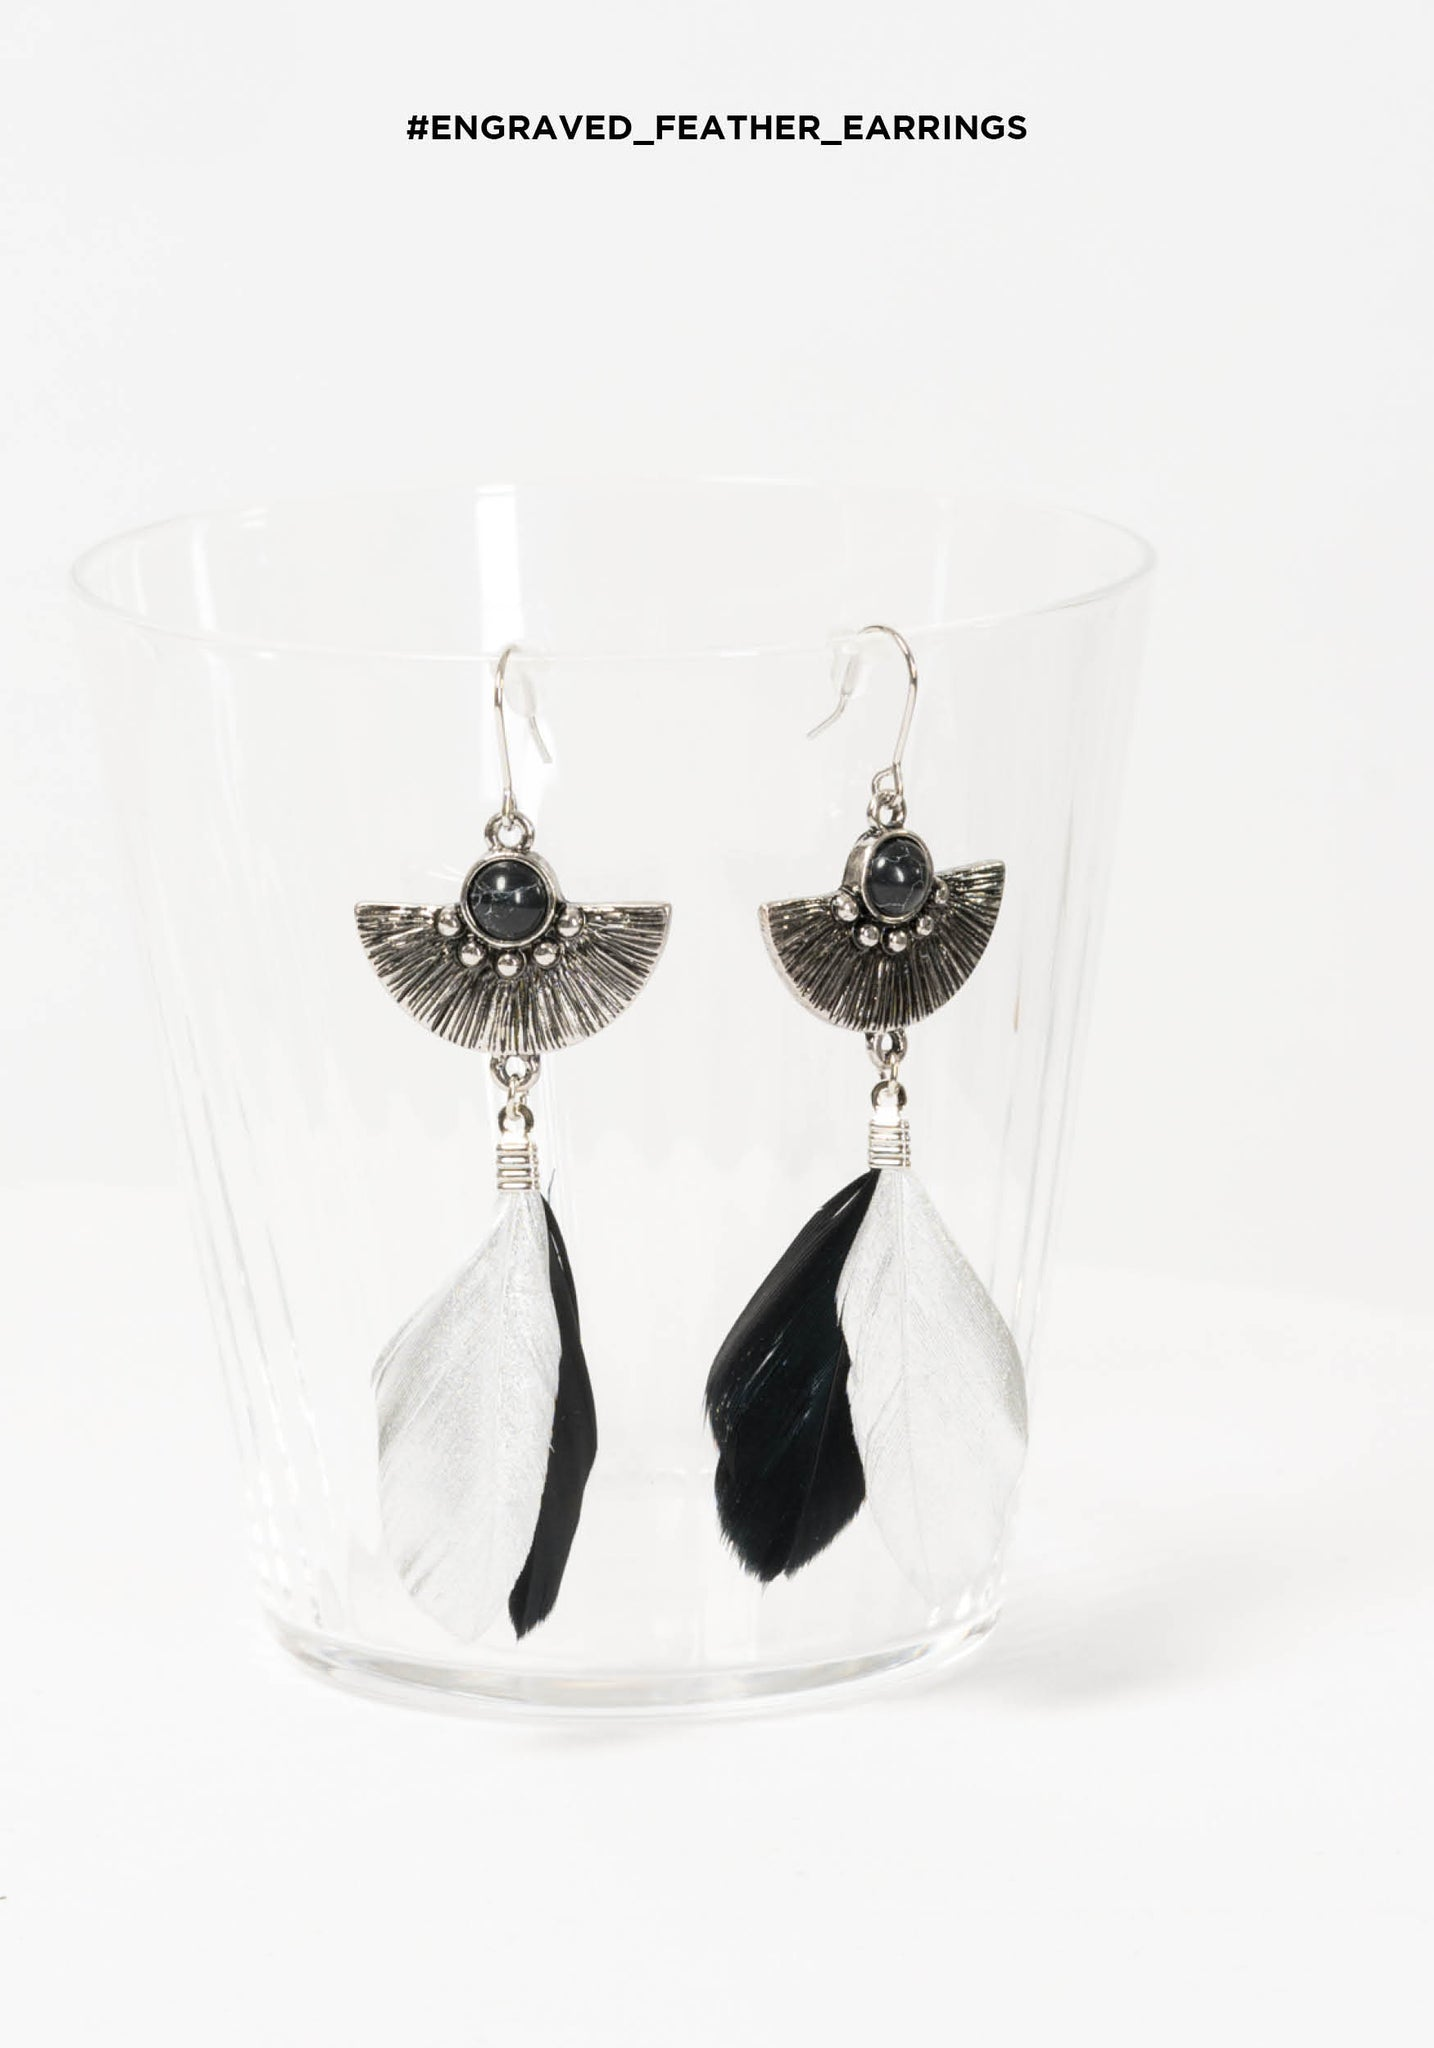 Engraved Feather Earrings